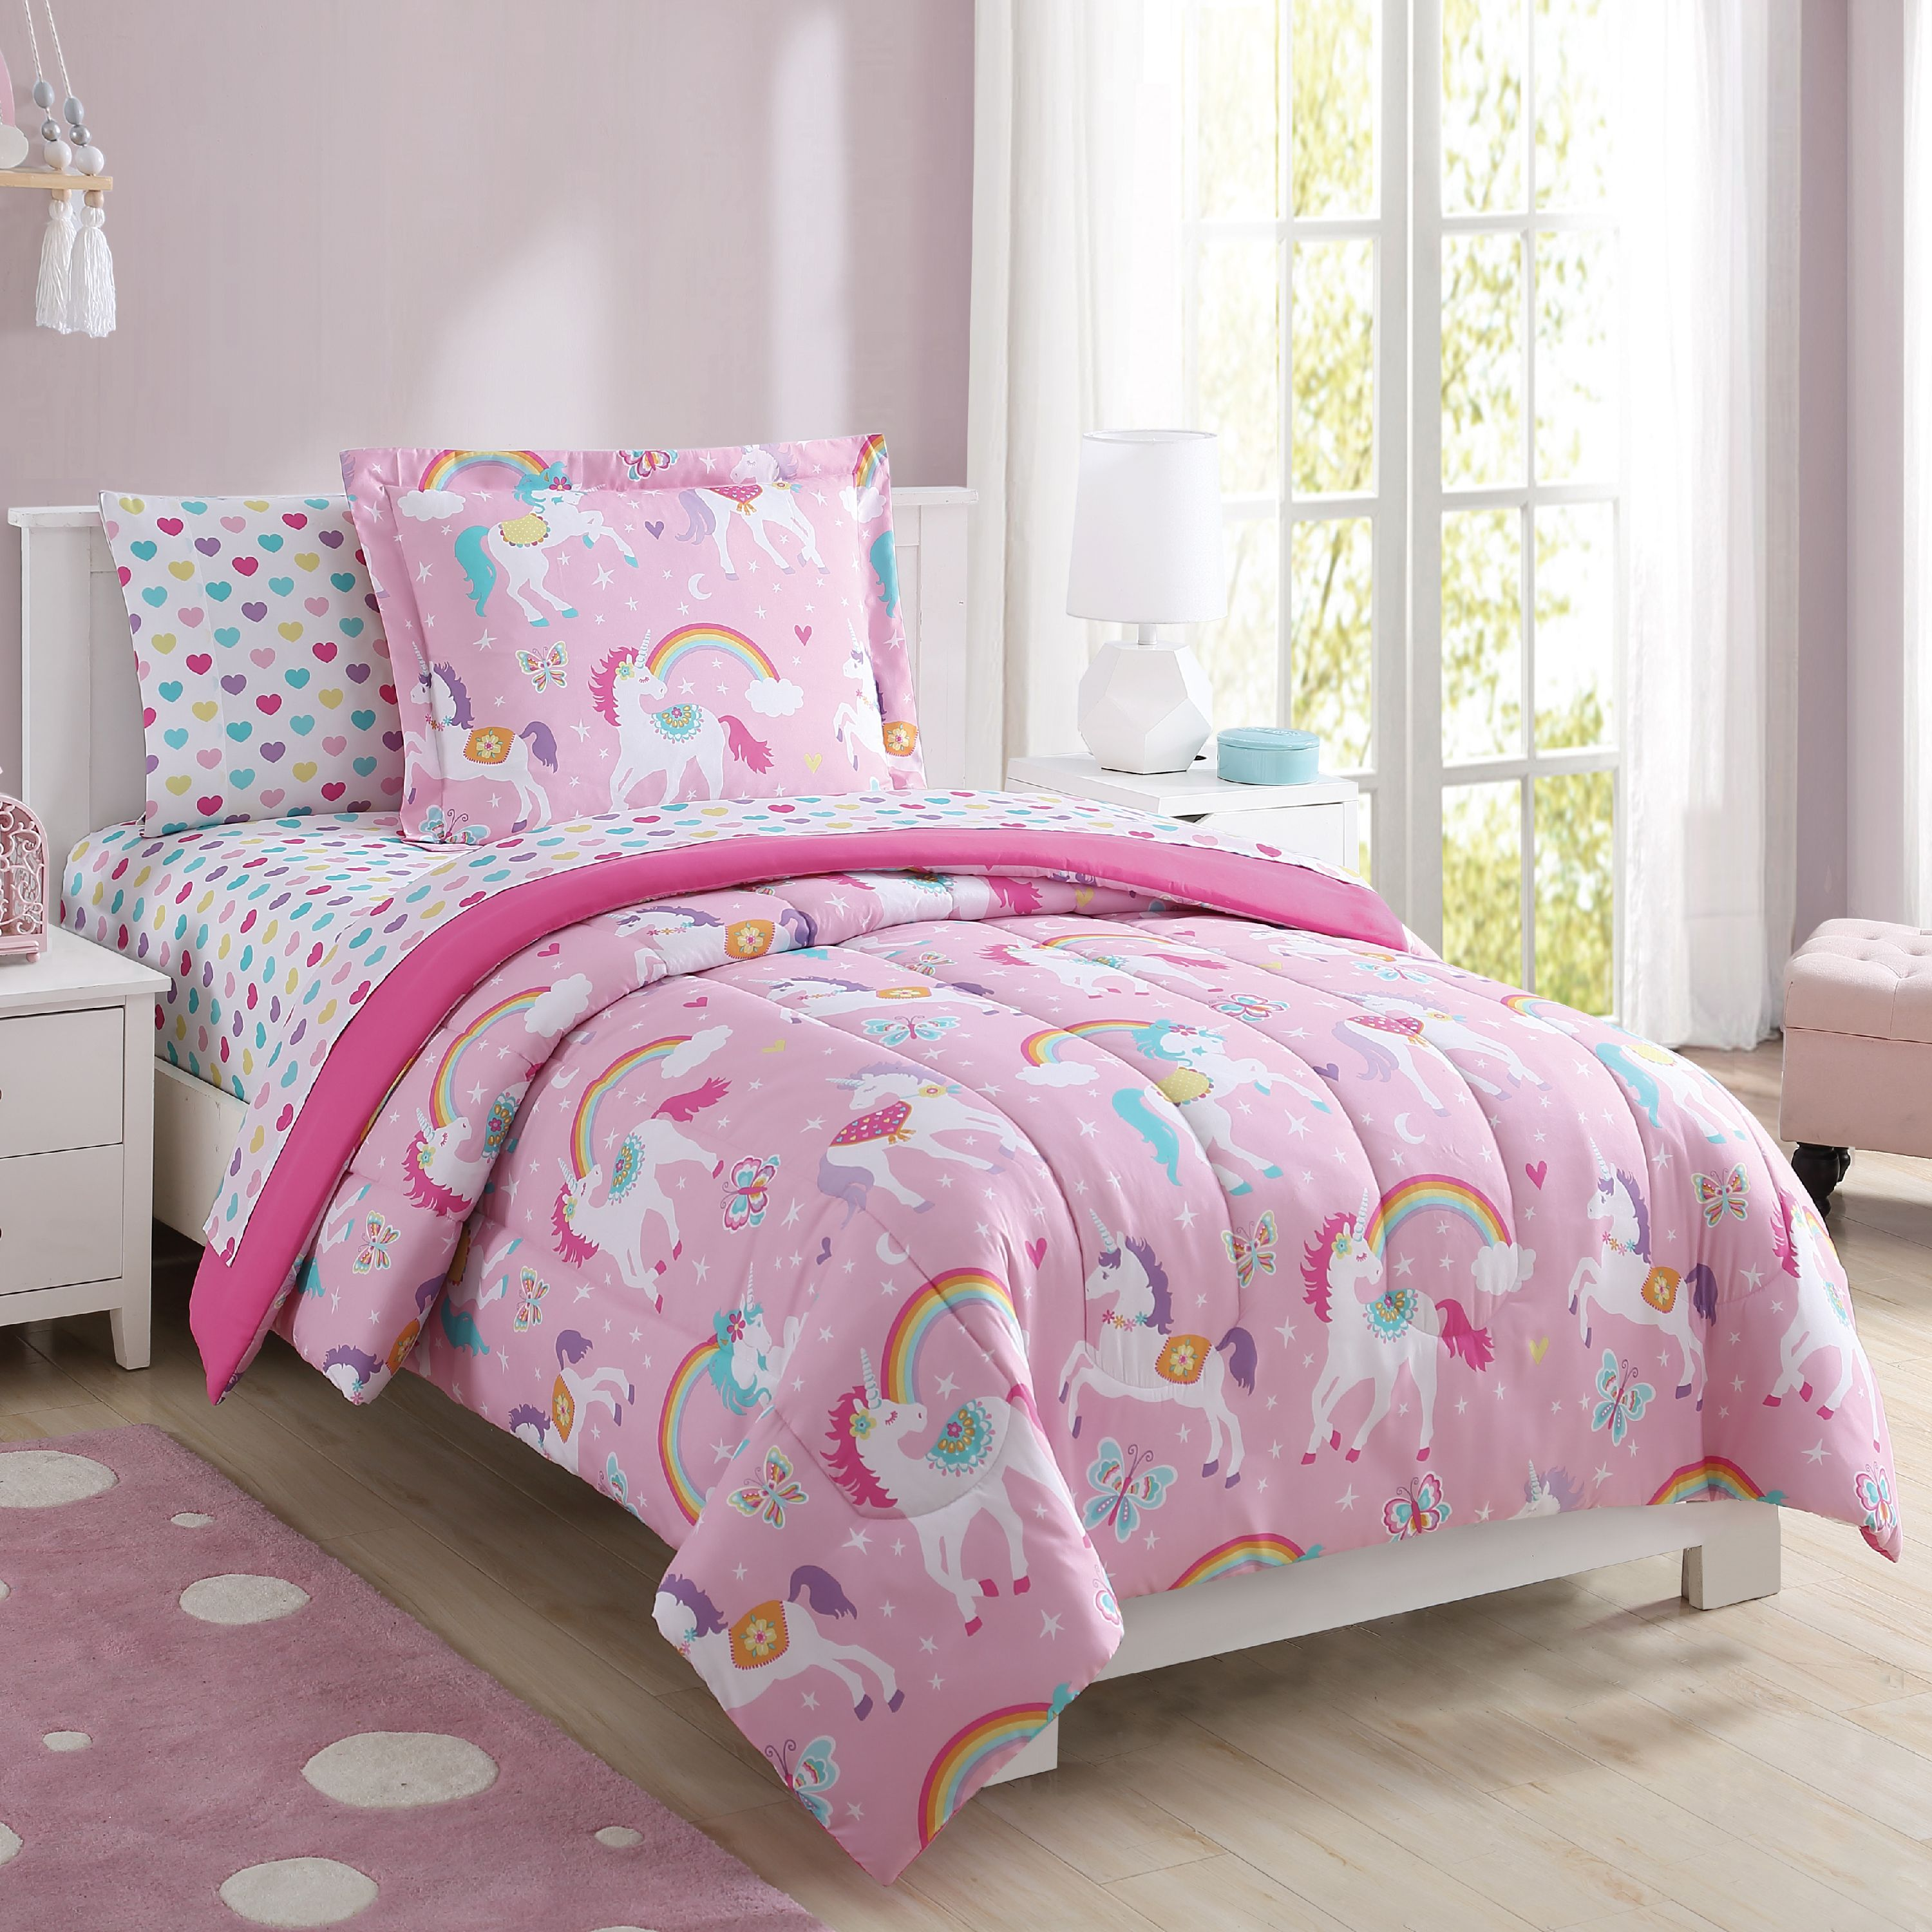 Mainstays Kids Rainbow Unicorn Bed in a Bag Complete Bedding Set by Keeco